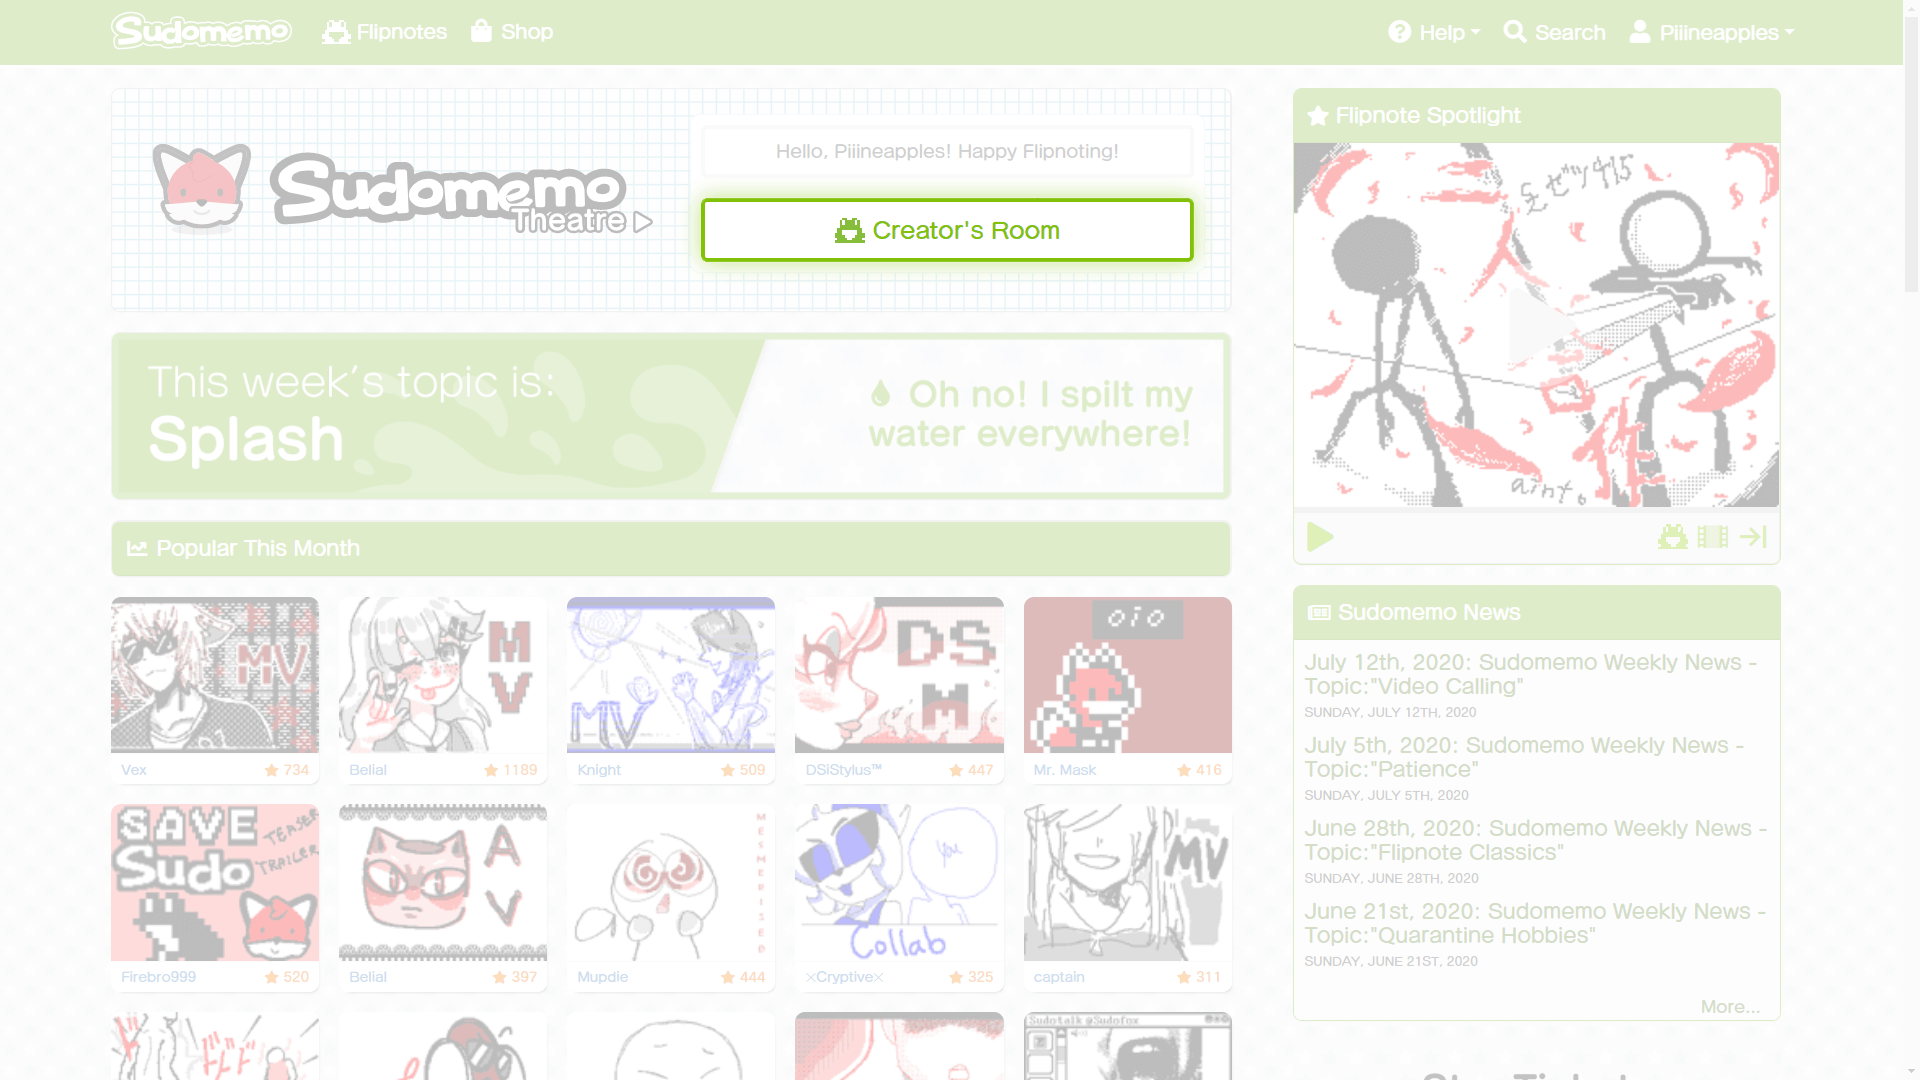 Sudomemo Home Page with Creator's Room Selected